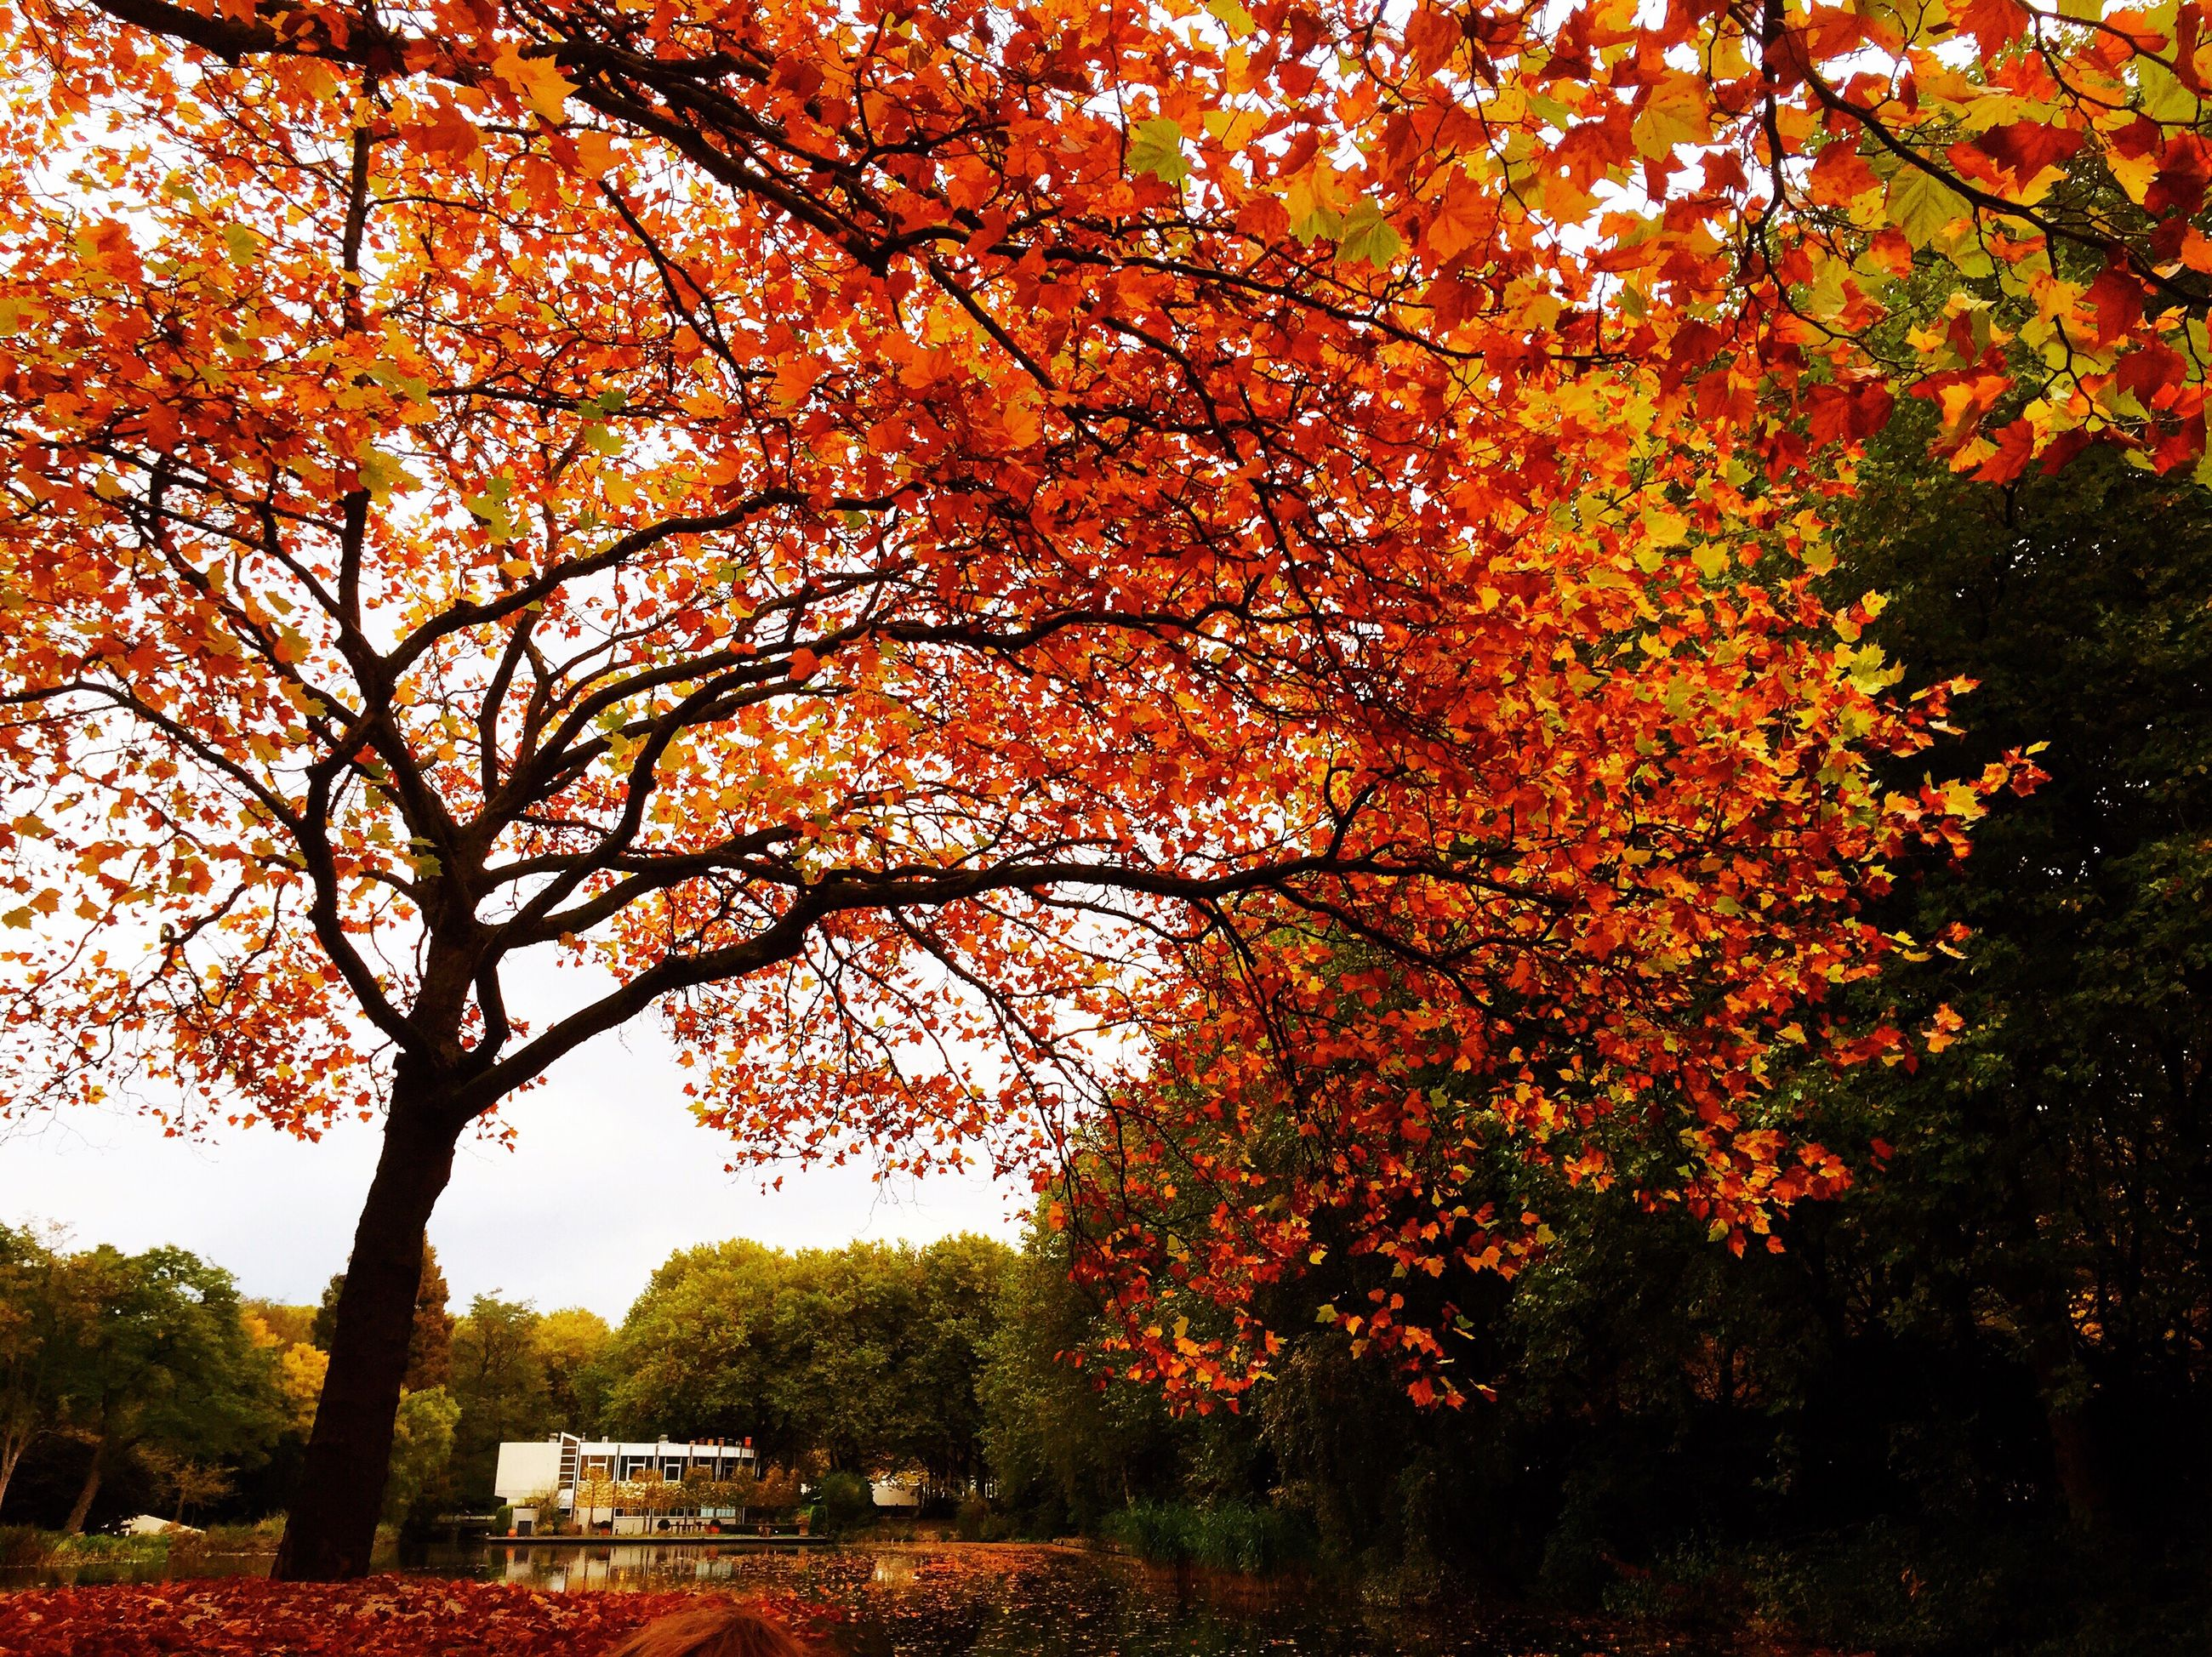 tree, orange color, nature, change, autumn, branch, beauty in nature, no people, growth, outdoors, day, scenics